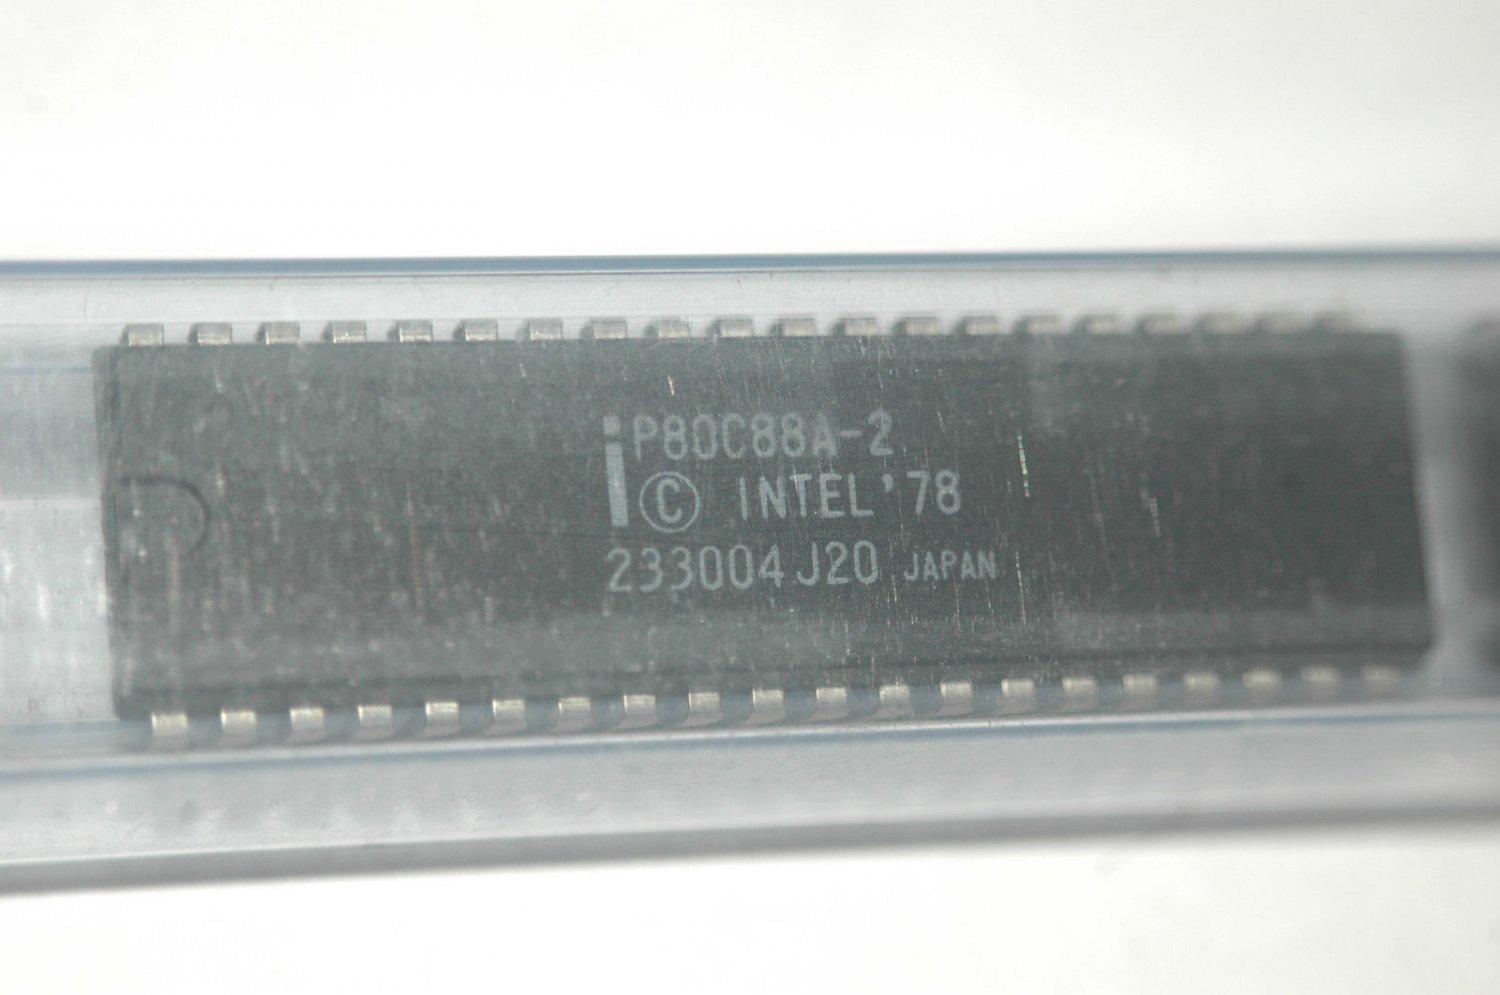 INTEL P80C88A-2 16-Bit Microprocessor - Bus-hold Circuitry 40-Pin Dip Qty-1